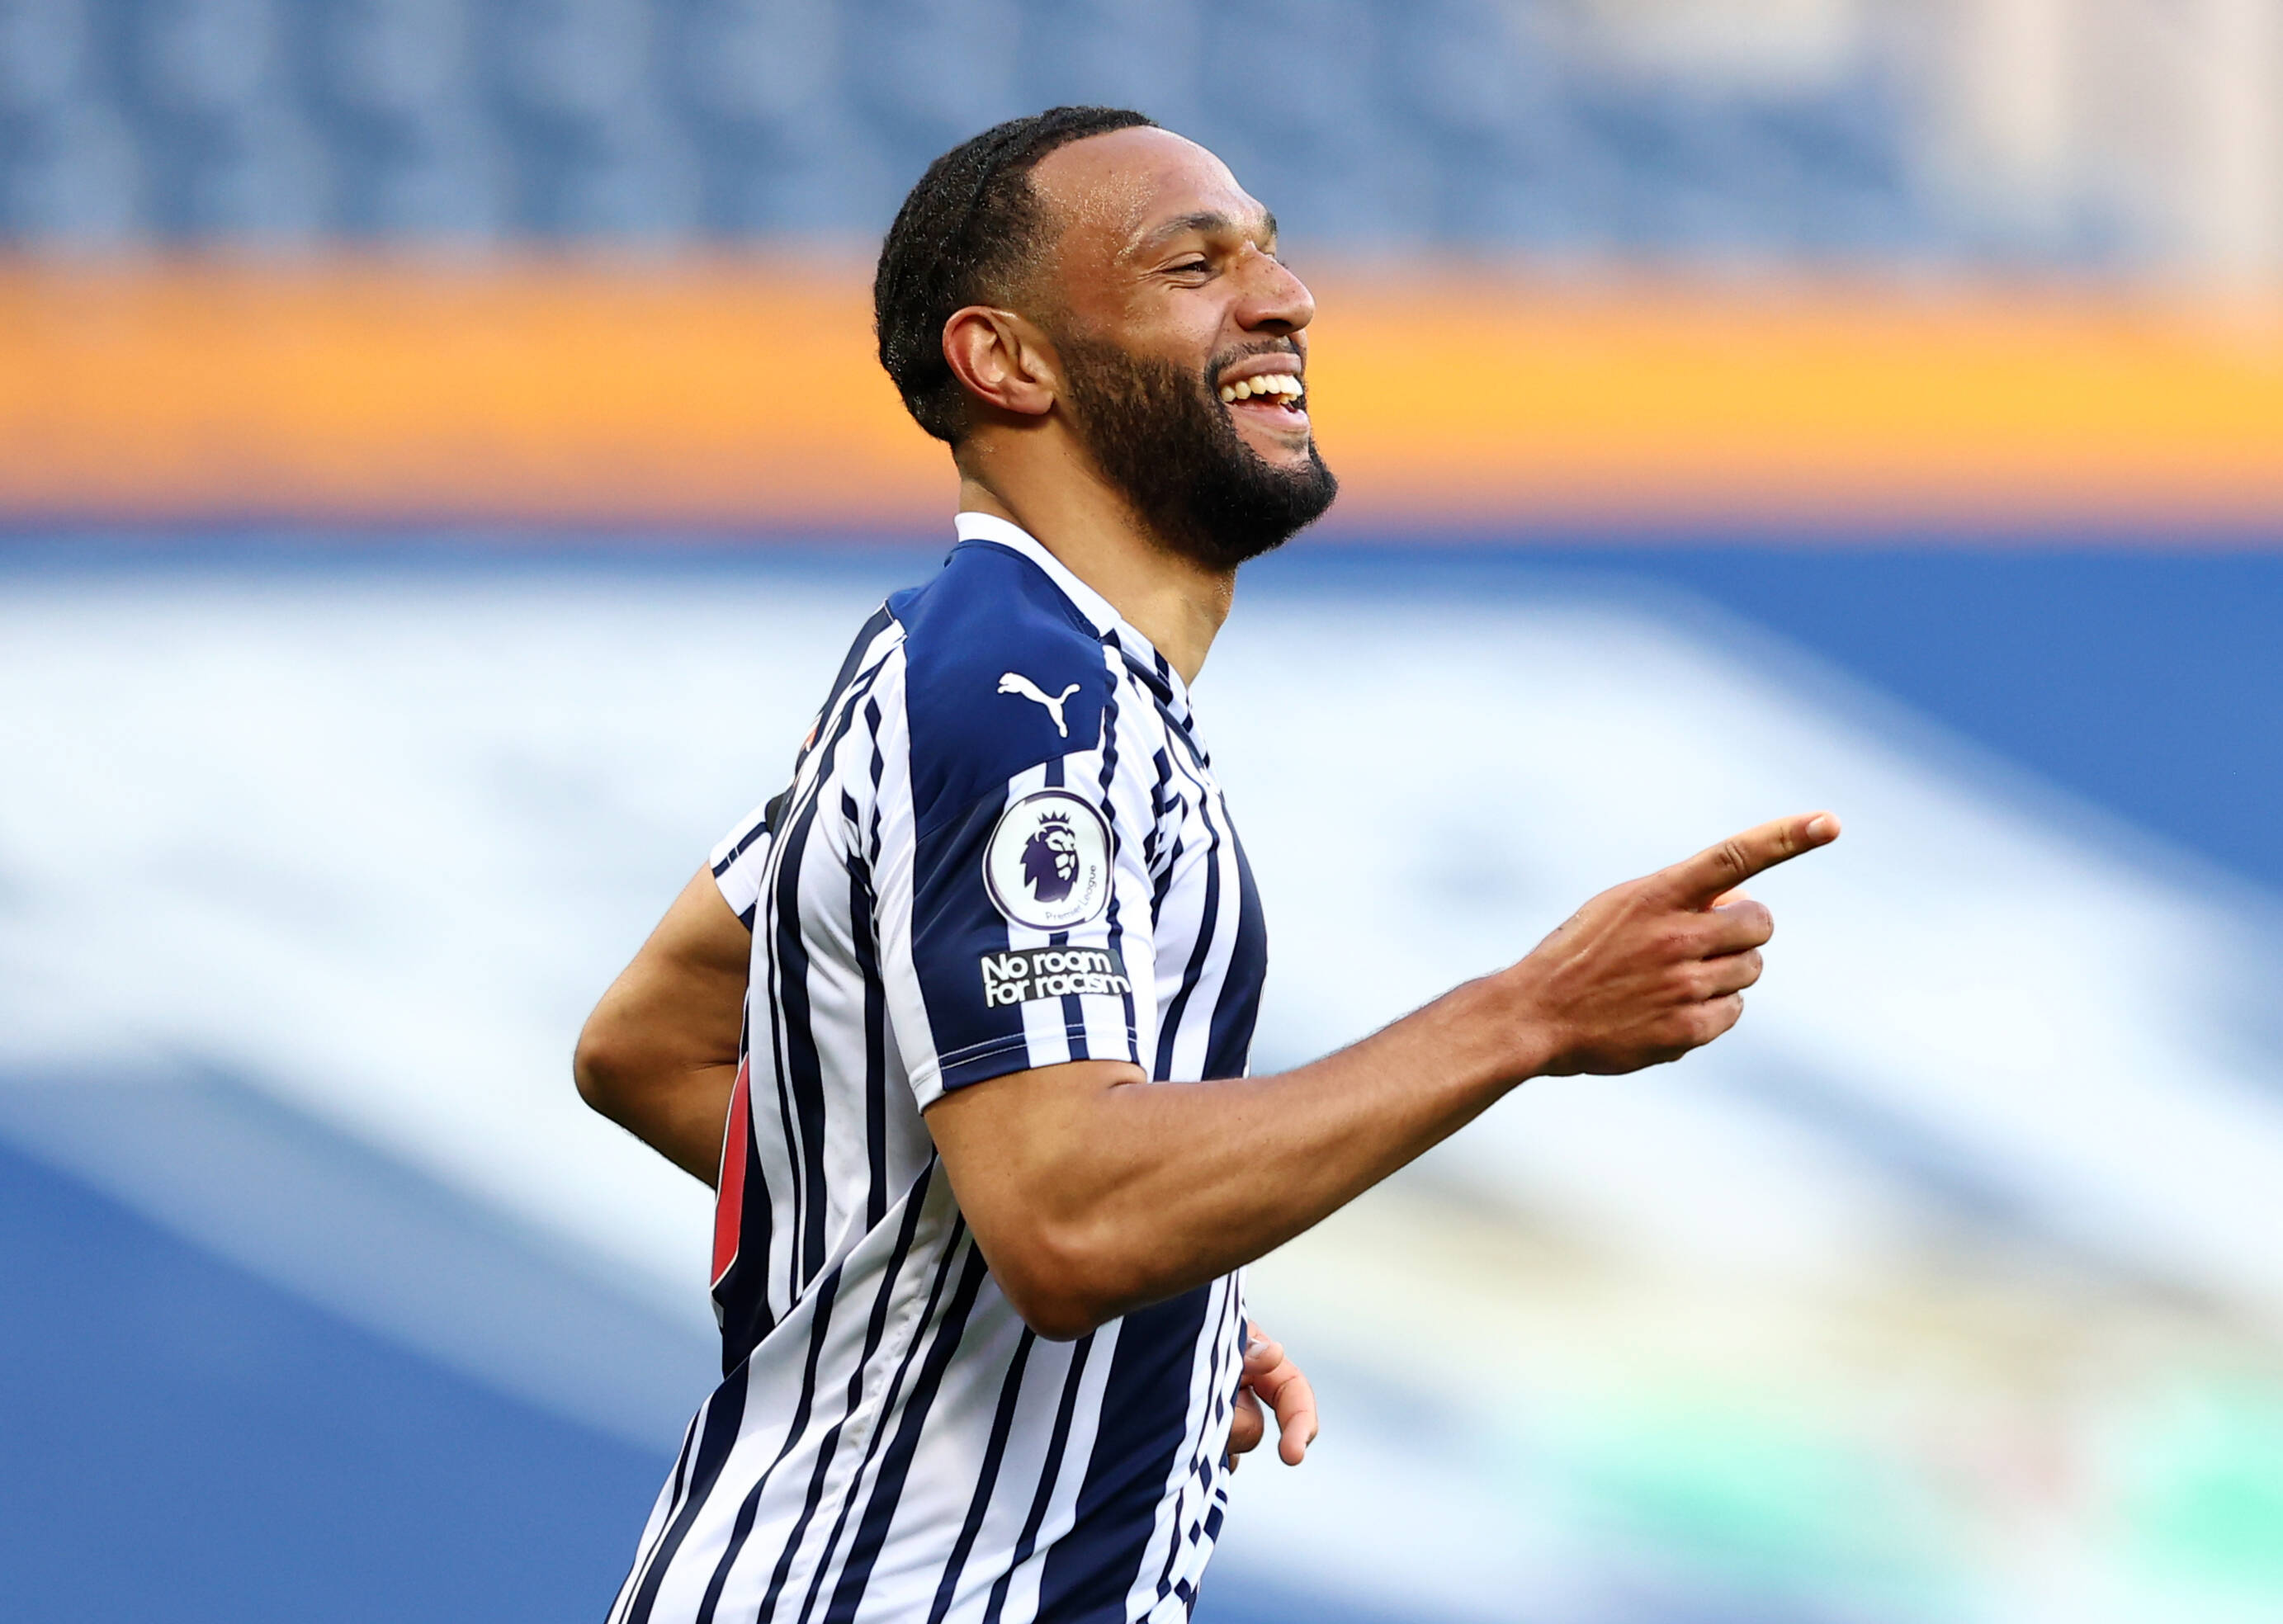 West Brom's lifeline: why this player could determine the Baggies' Premier League fate